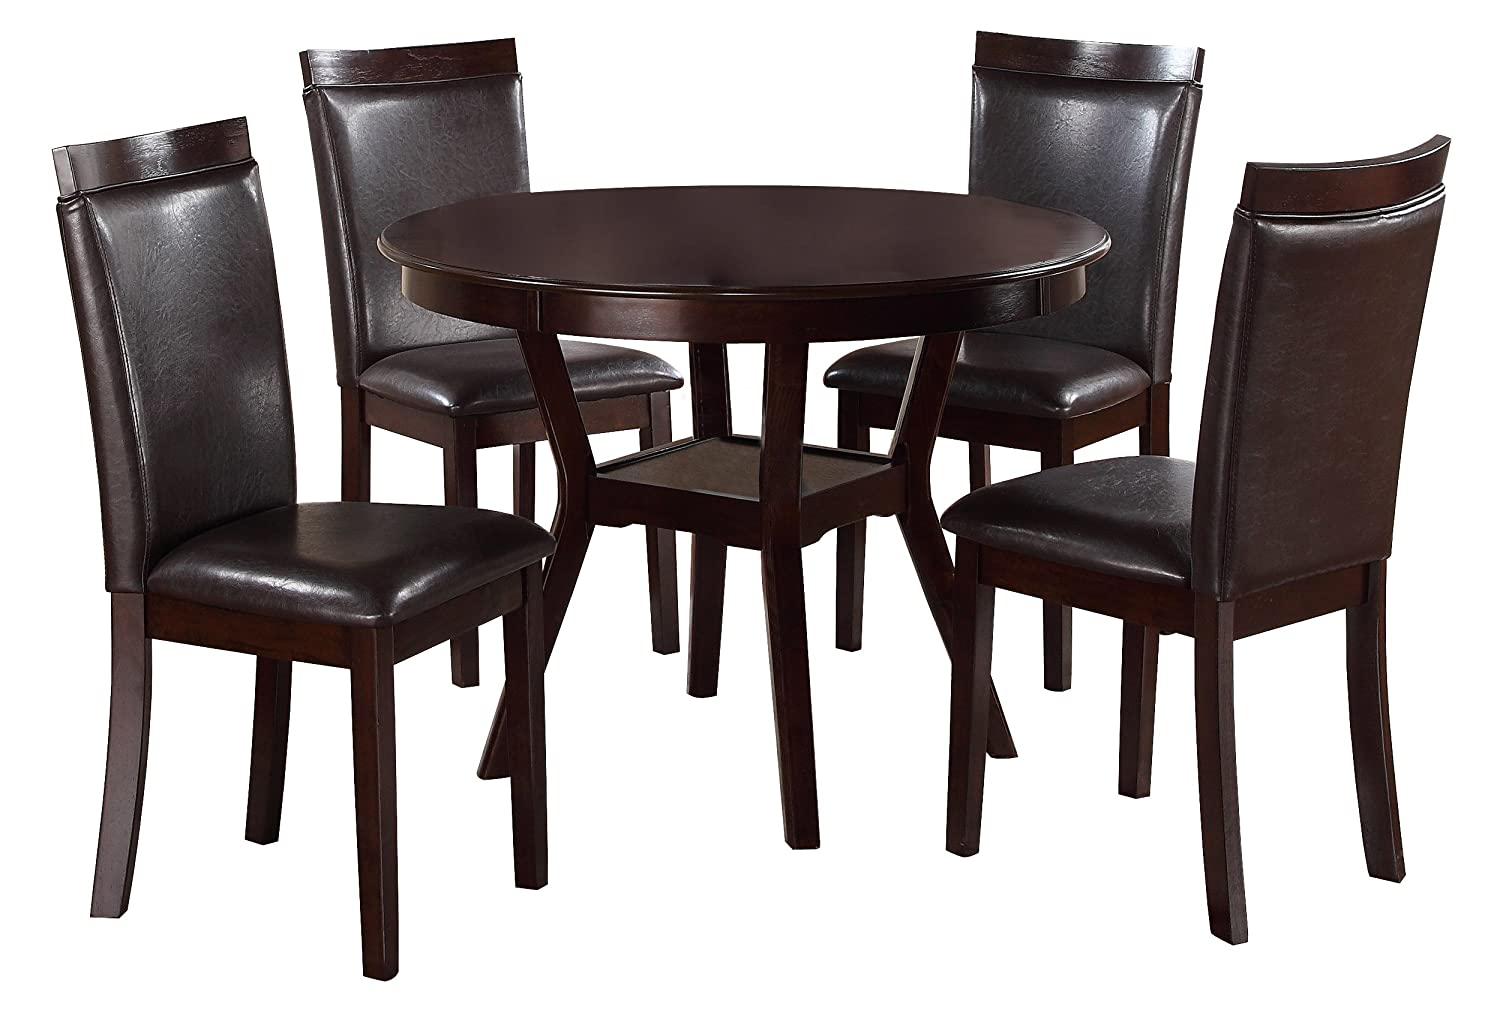 Supreme Dining Table Price List Choice Image Dining  : 81aSLFkUf0LSL1500 from sorahana.info size 1500 x 1010 jpeg 175kB